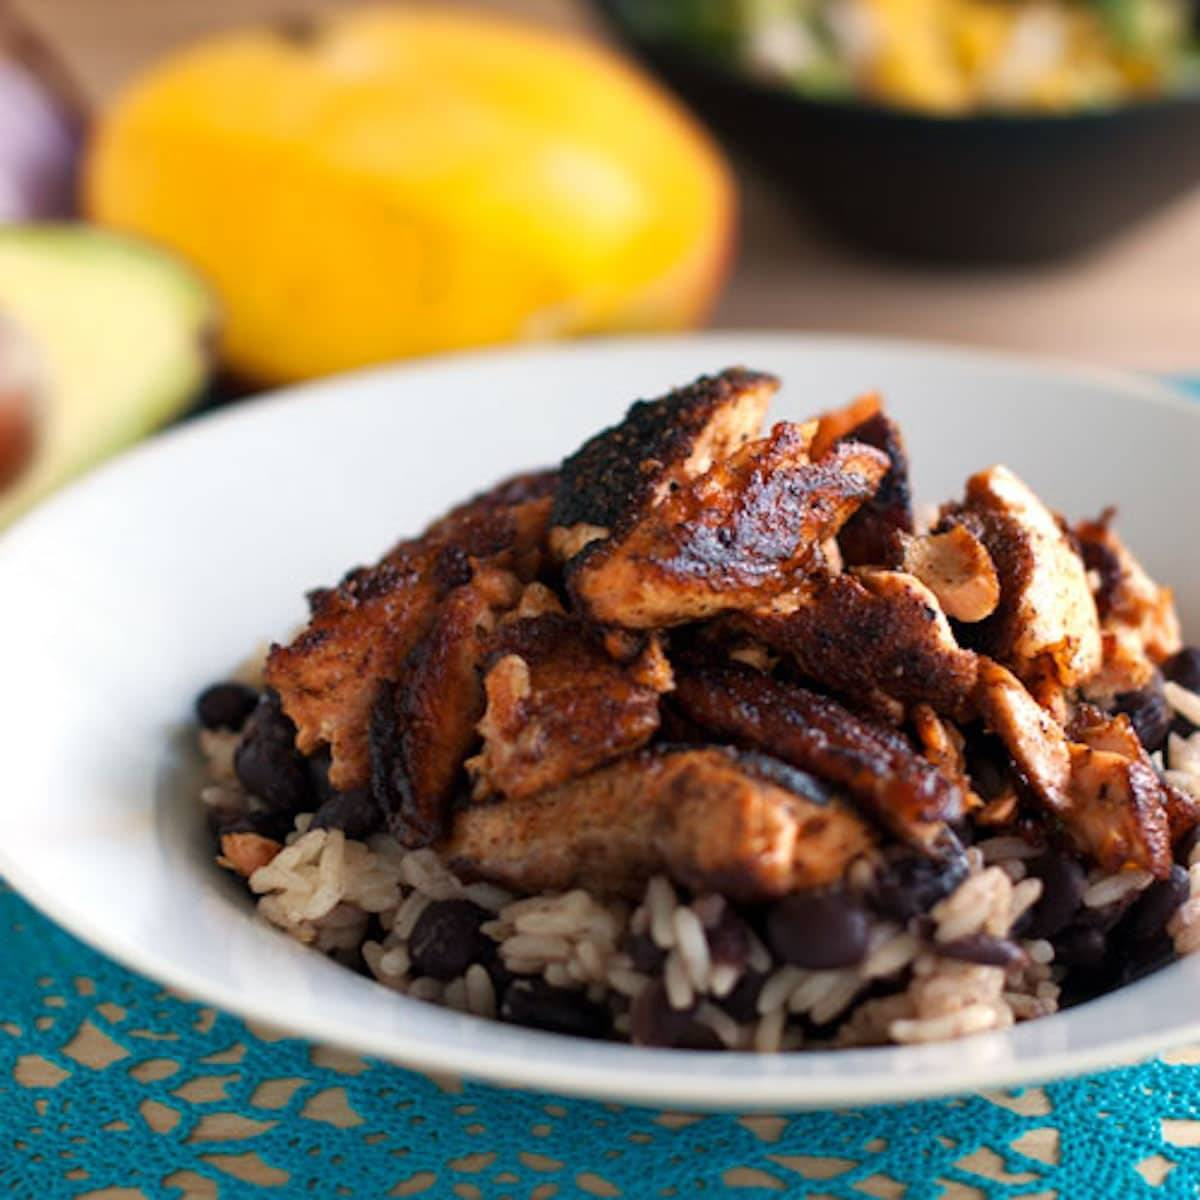 This Caribbean jerk salmon bowl with mango salsa is easy, full of flavor, and super healthy. This is feel-good food at its best! | pinchofyum.com